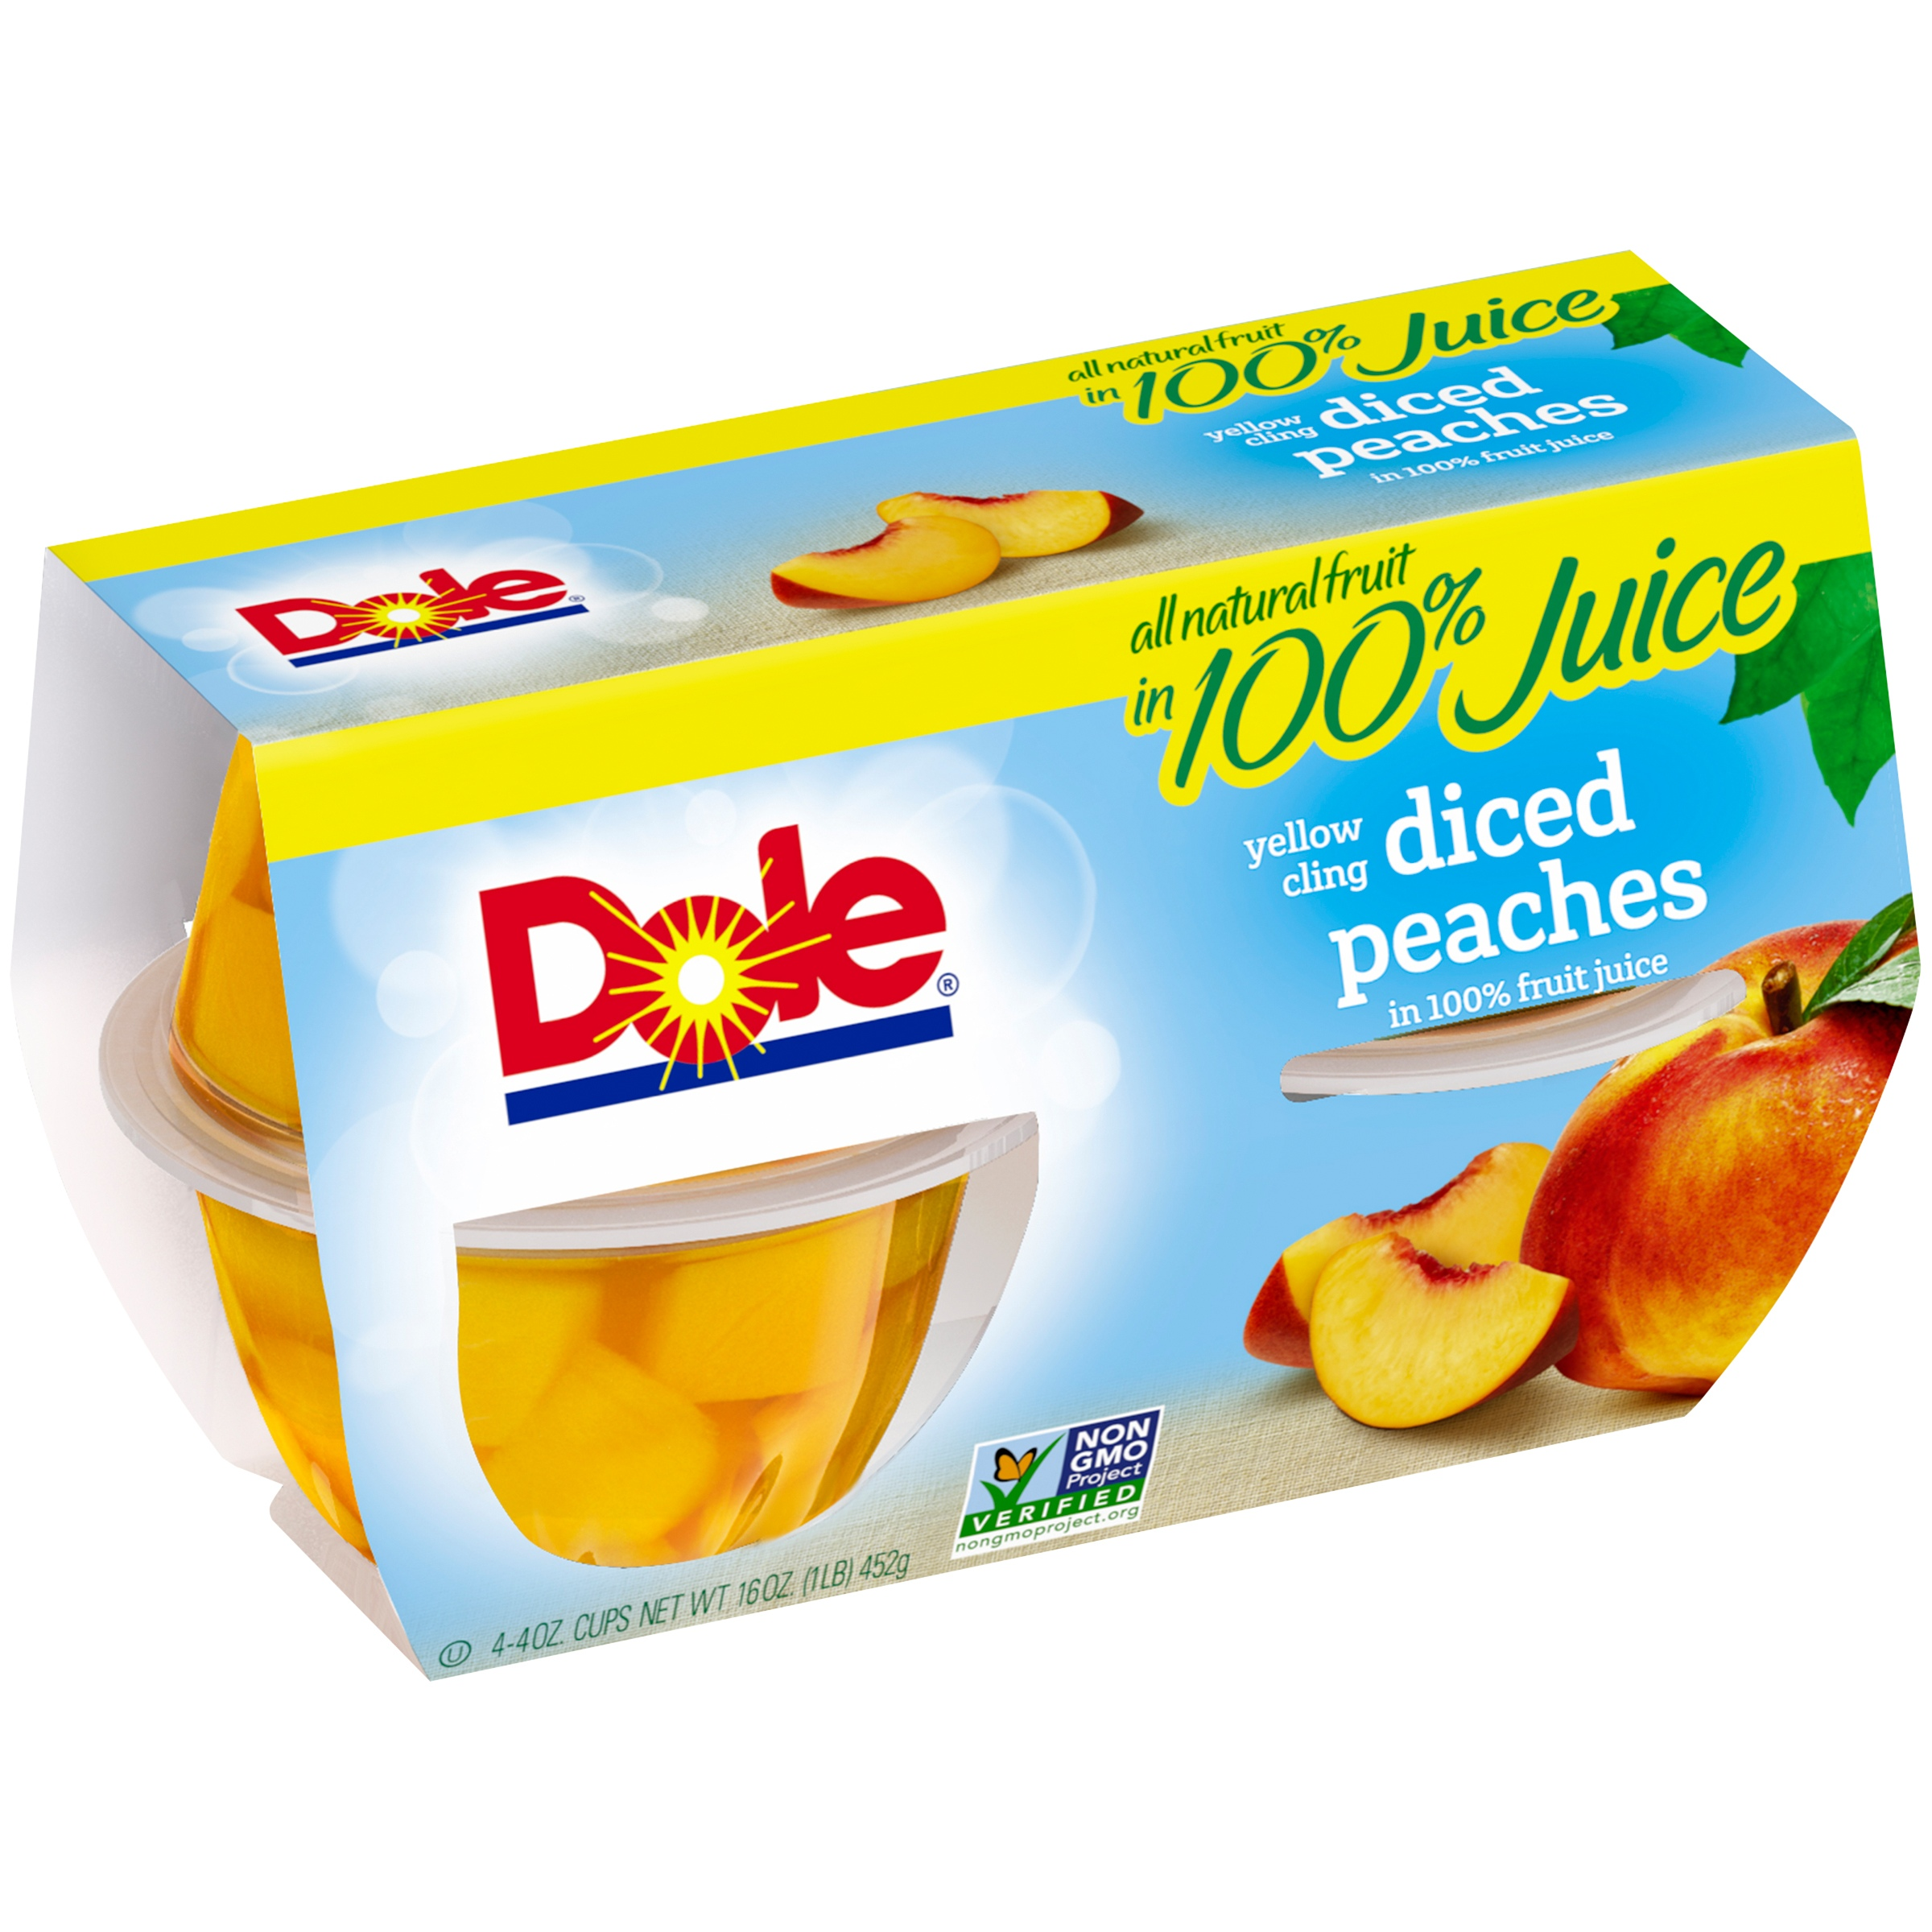 Dole® Diced Peaches in 100% Juice, 4-4 oz. Cups